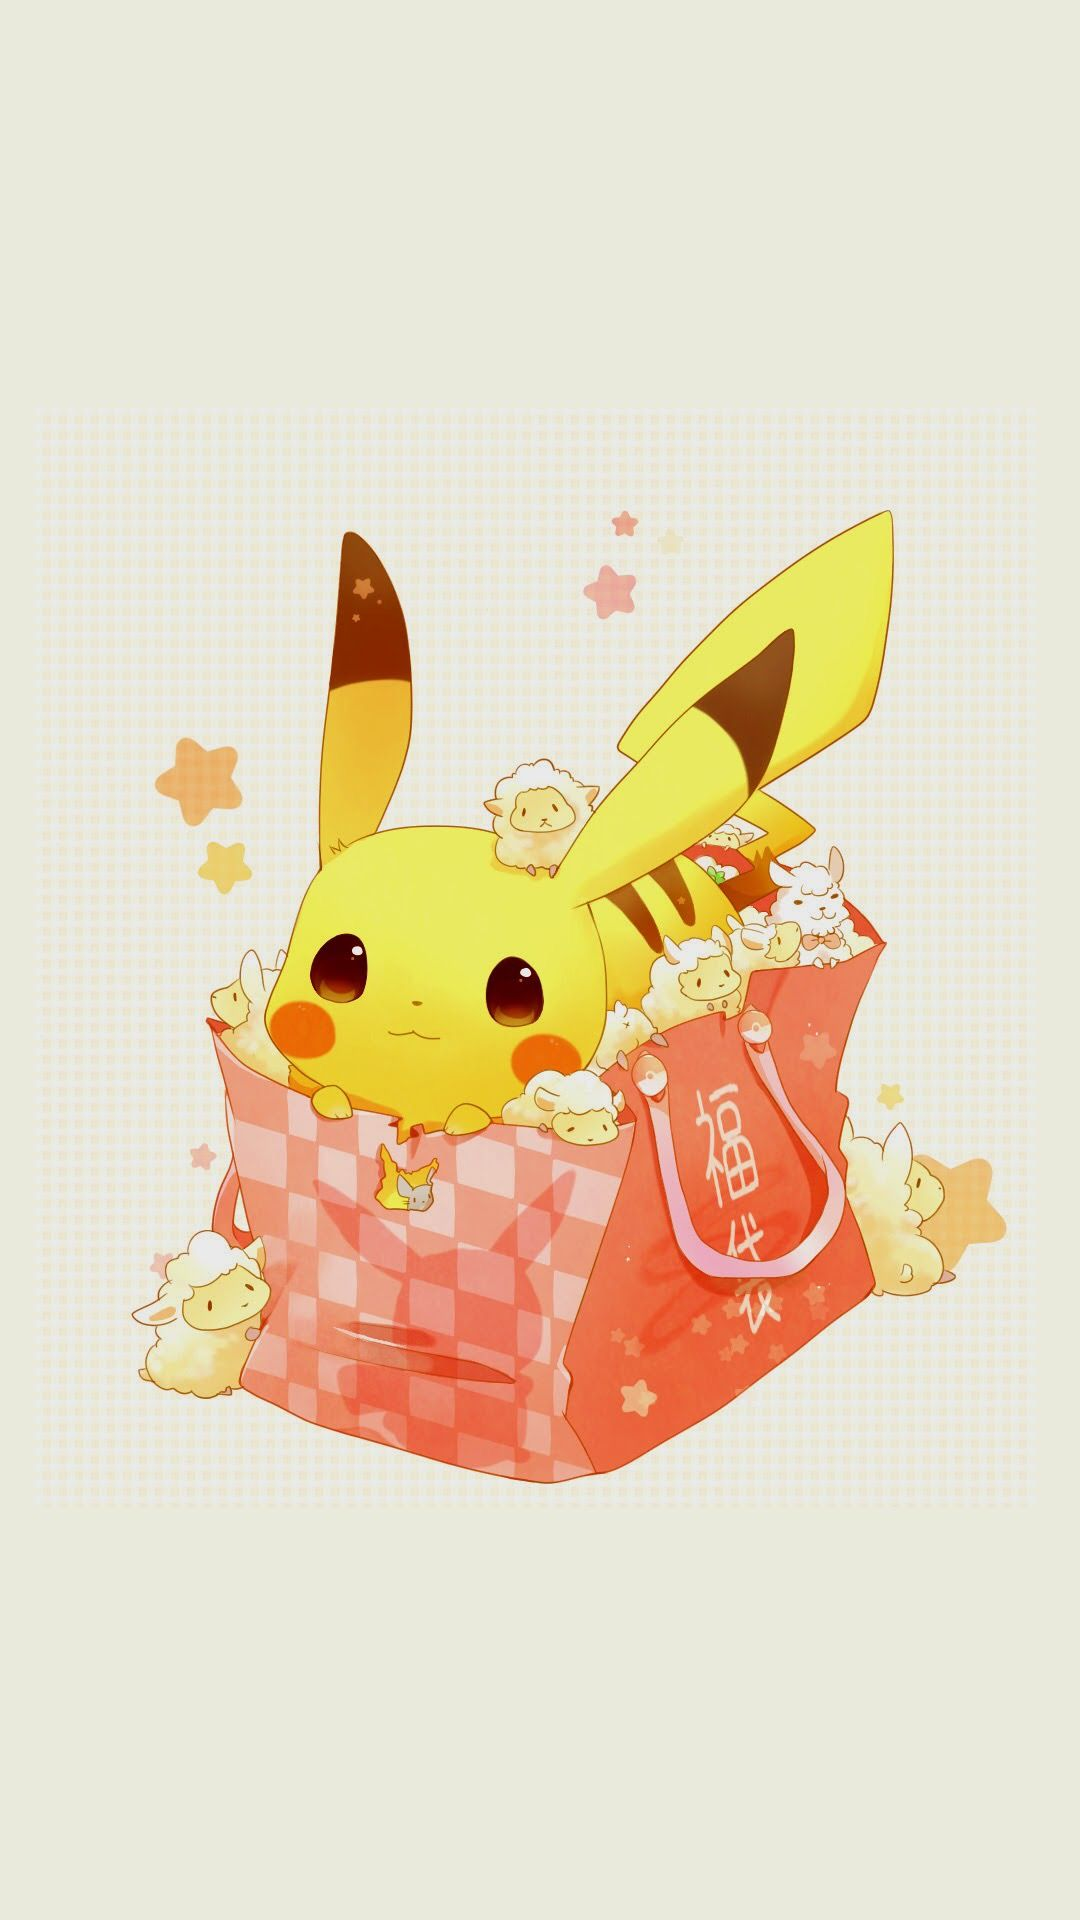 Pikachu 1080 x 1920 Wallpapers available for free download